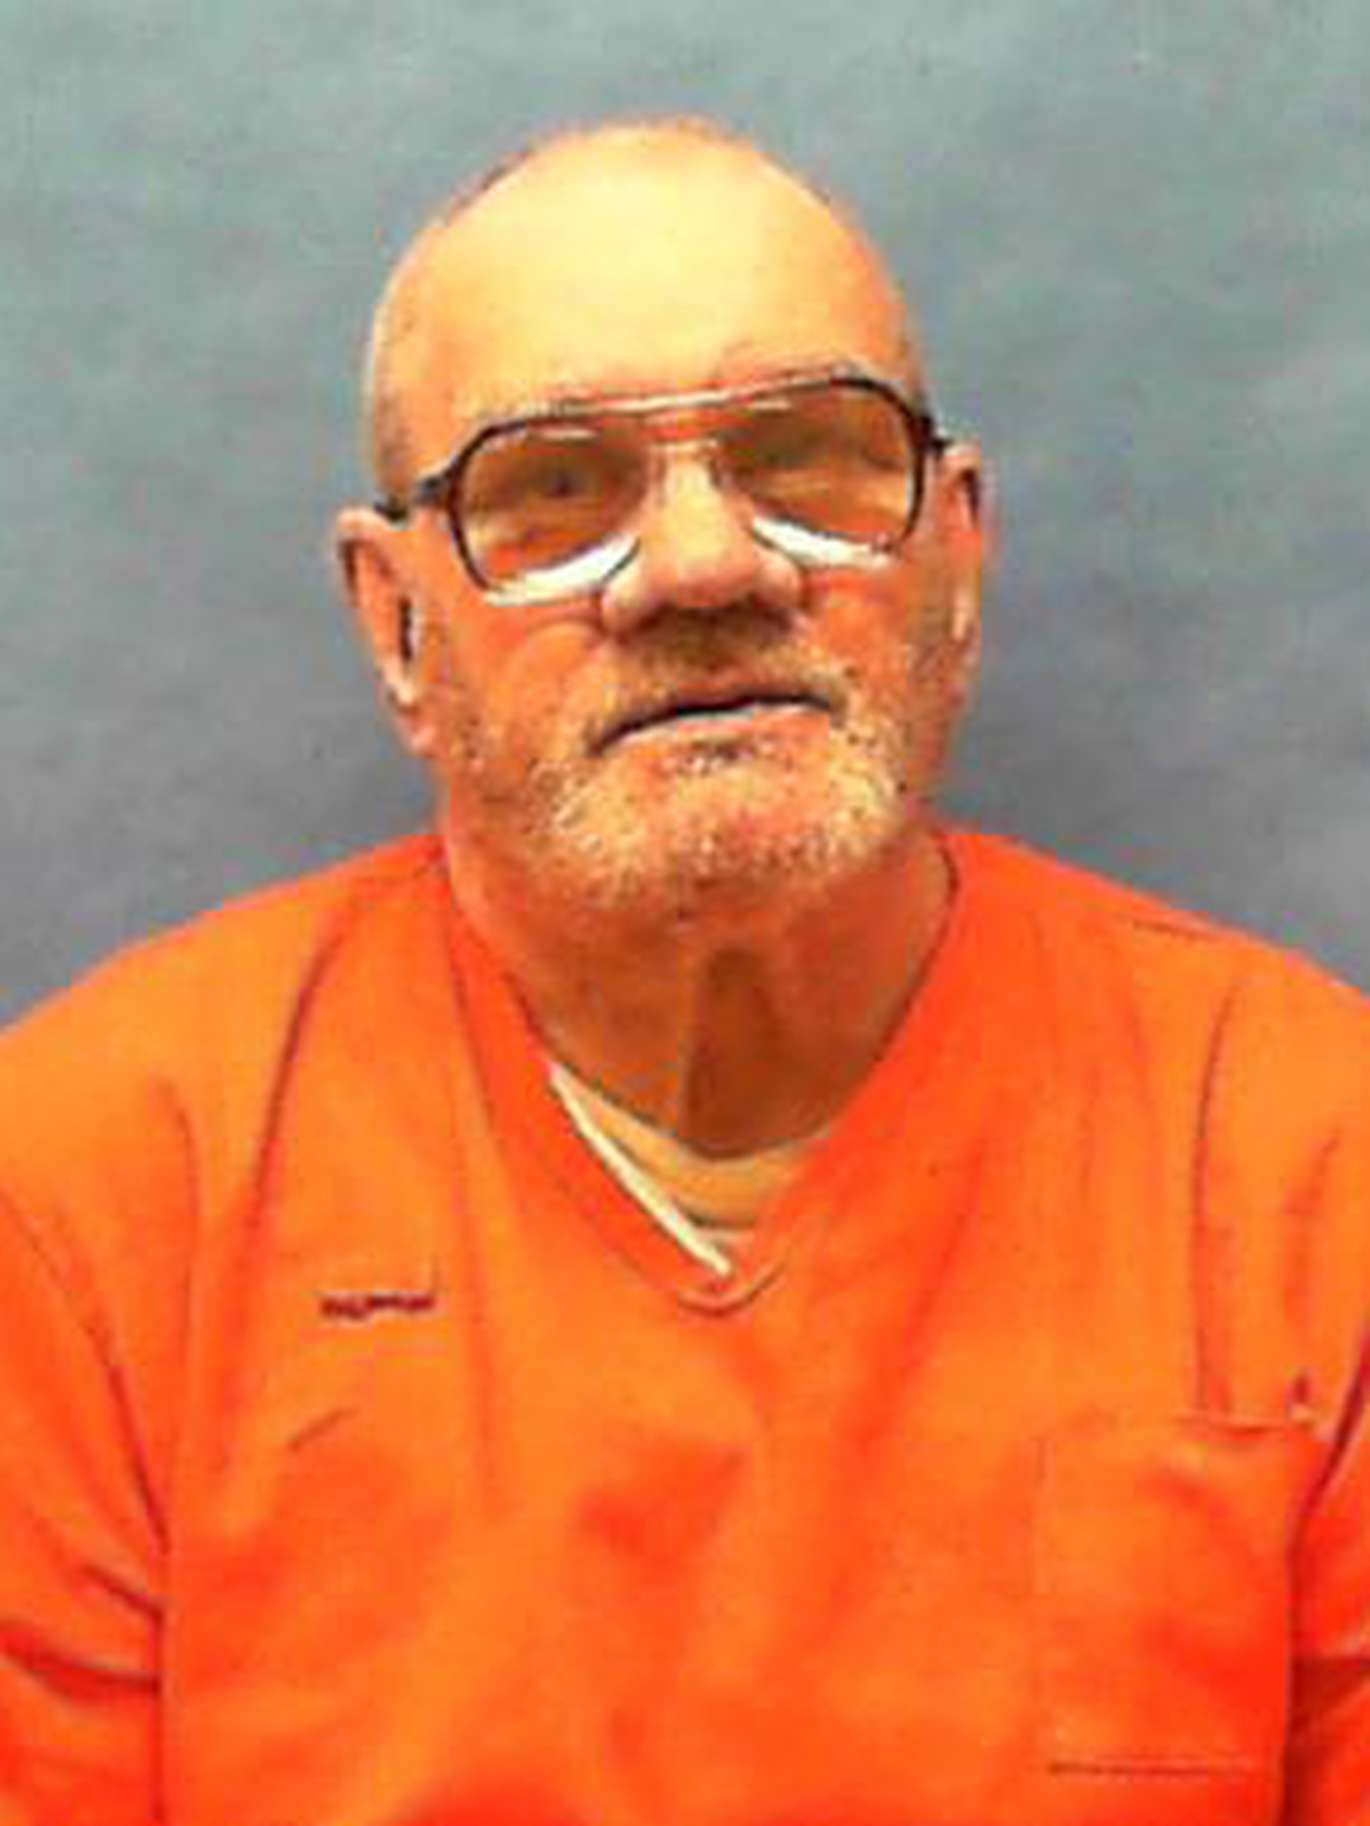 In March 1987, Paul Brown was sentenced to die for the March 1986 murder of Pauline Cowell. He began his sentence on March 5, 1987.